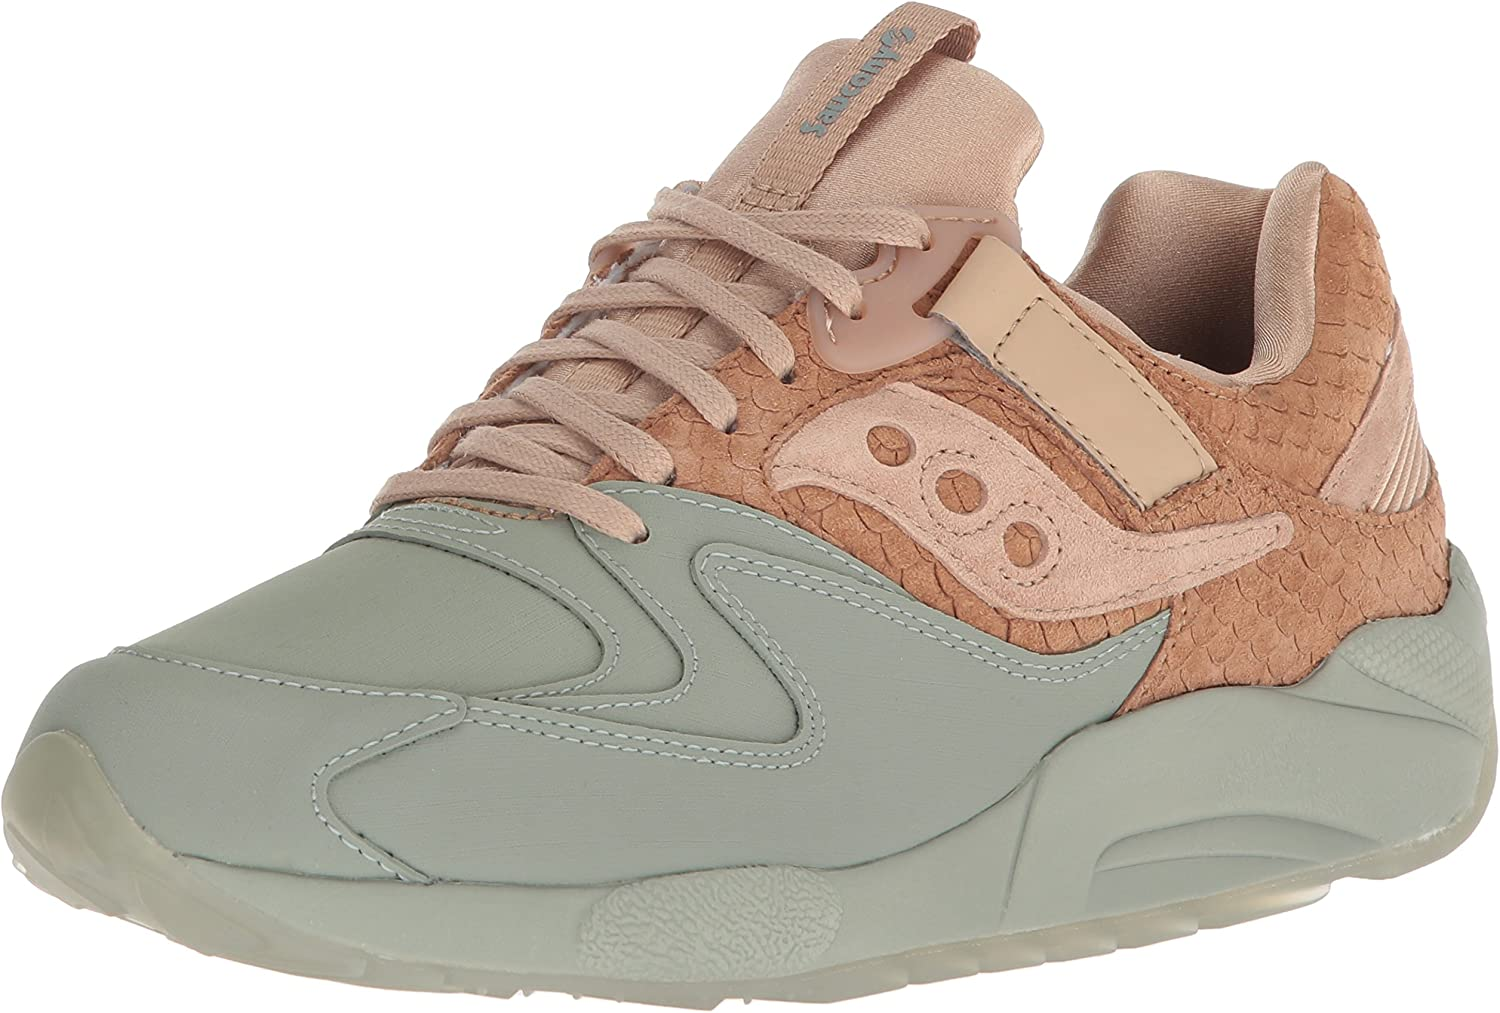 Saucony Originals Men's Grid 9000 HT Running schuhe, Tan Grün, 8.5 Medium US